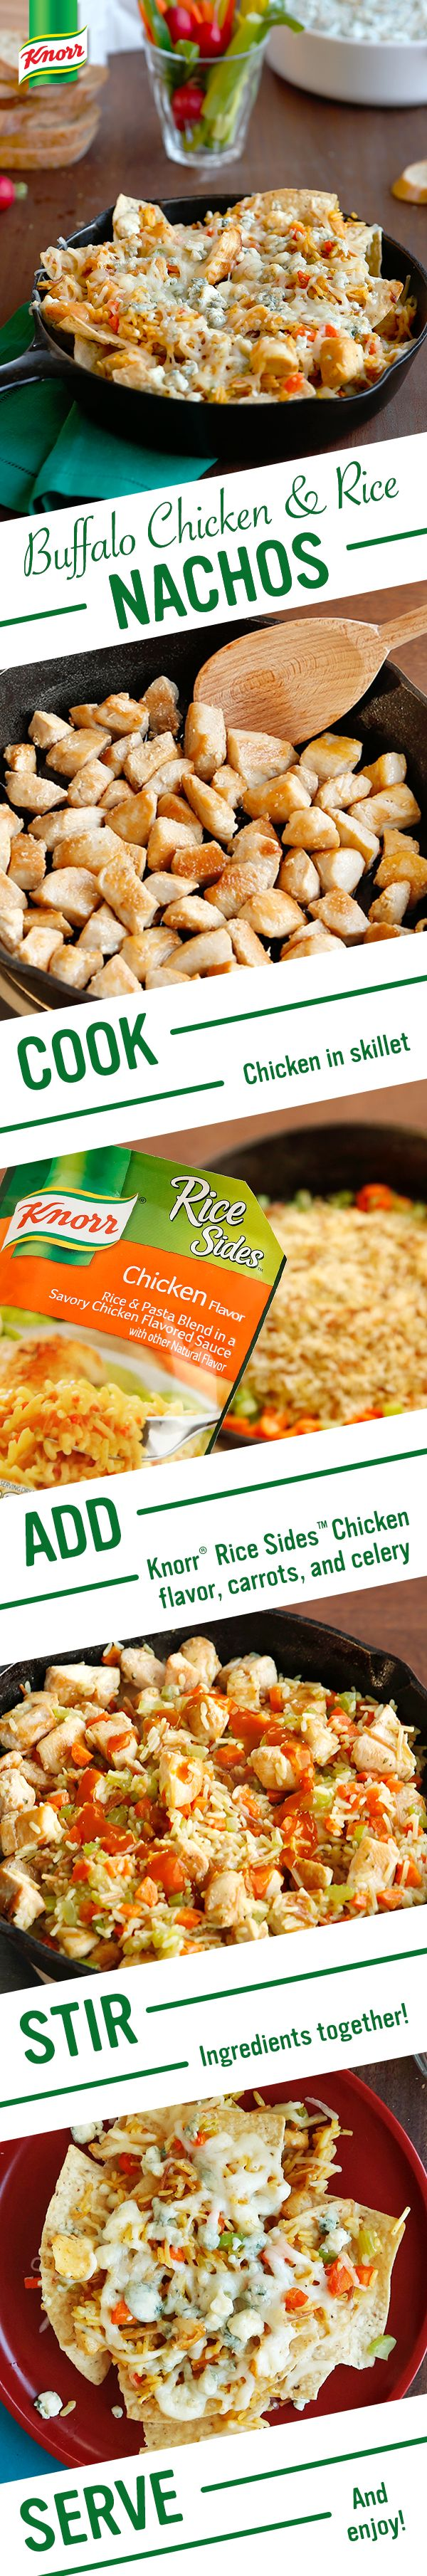 Knorr's Buffalo Chicken & Rice Nachos are the perfect game day (or any day!) inspired spread. It's the best meal idea for your favorite team- family! Follow this easy recipe for a winning flavor: 1. Cook chicken. 2. Add water, Knorr® Rice Sides™ - Chicken flavor, carrots, & celery 3. Stir in chicken & hot sauce. Serve over tortilla chips, sprinkled w/ blue cheese & chopped celery. Enjoy!